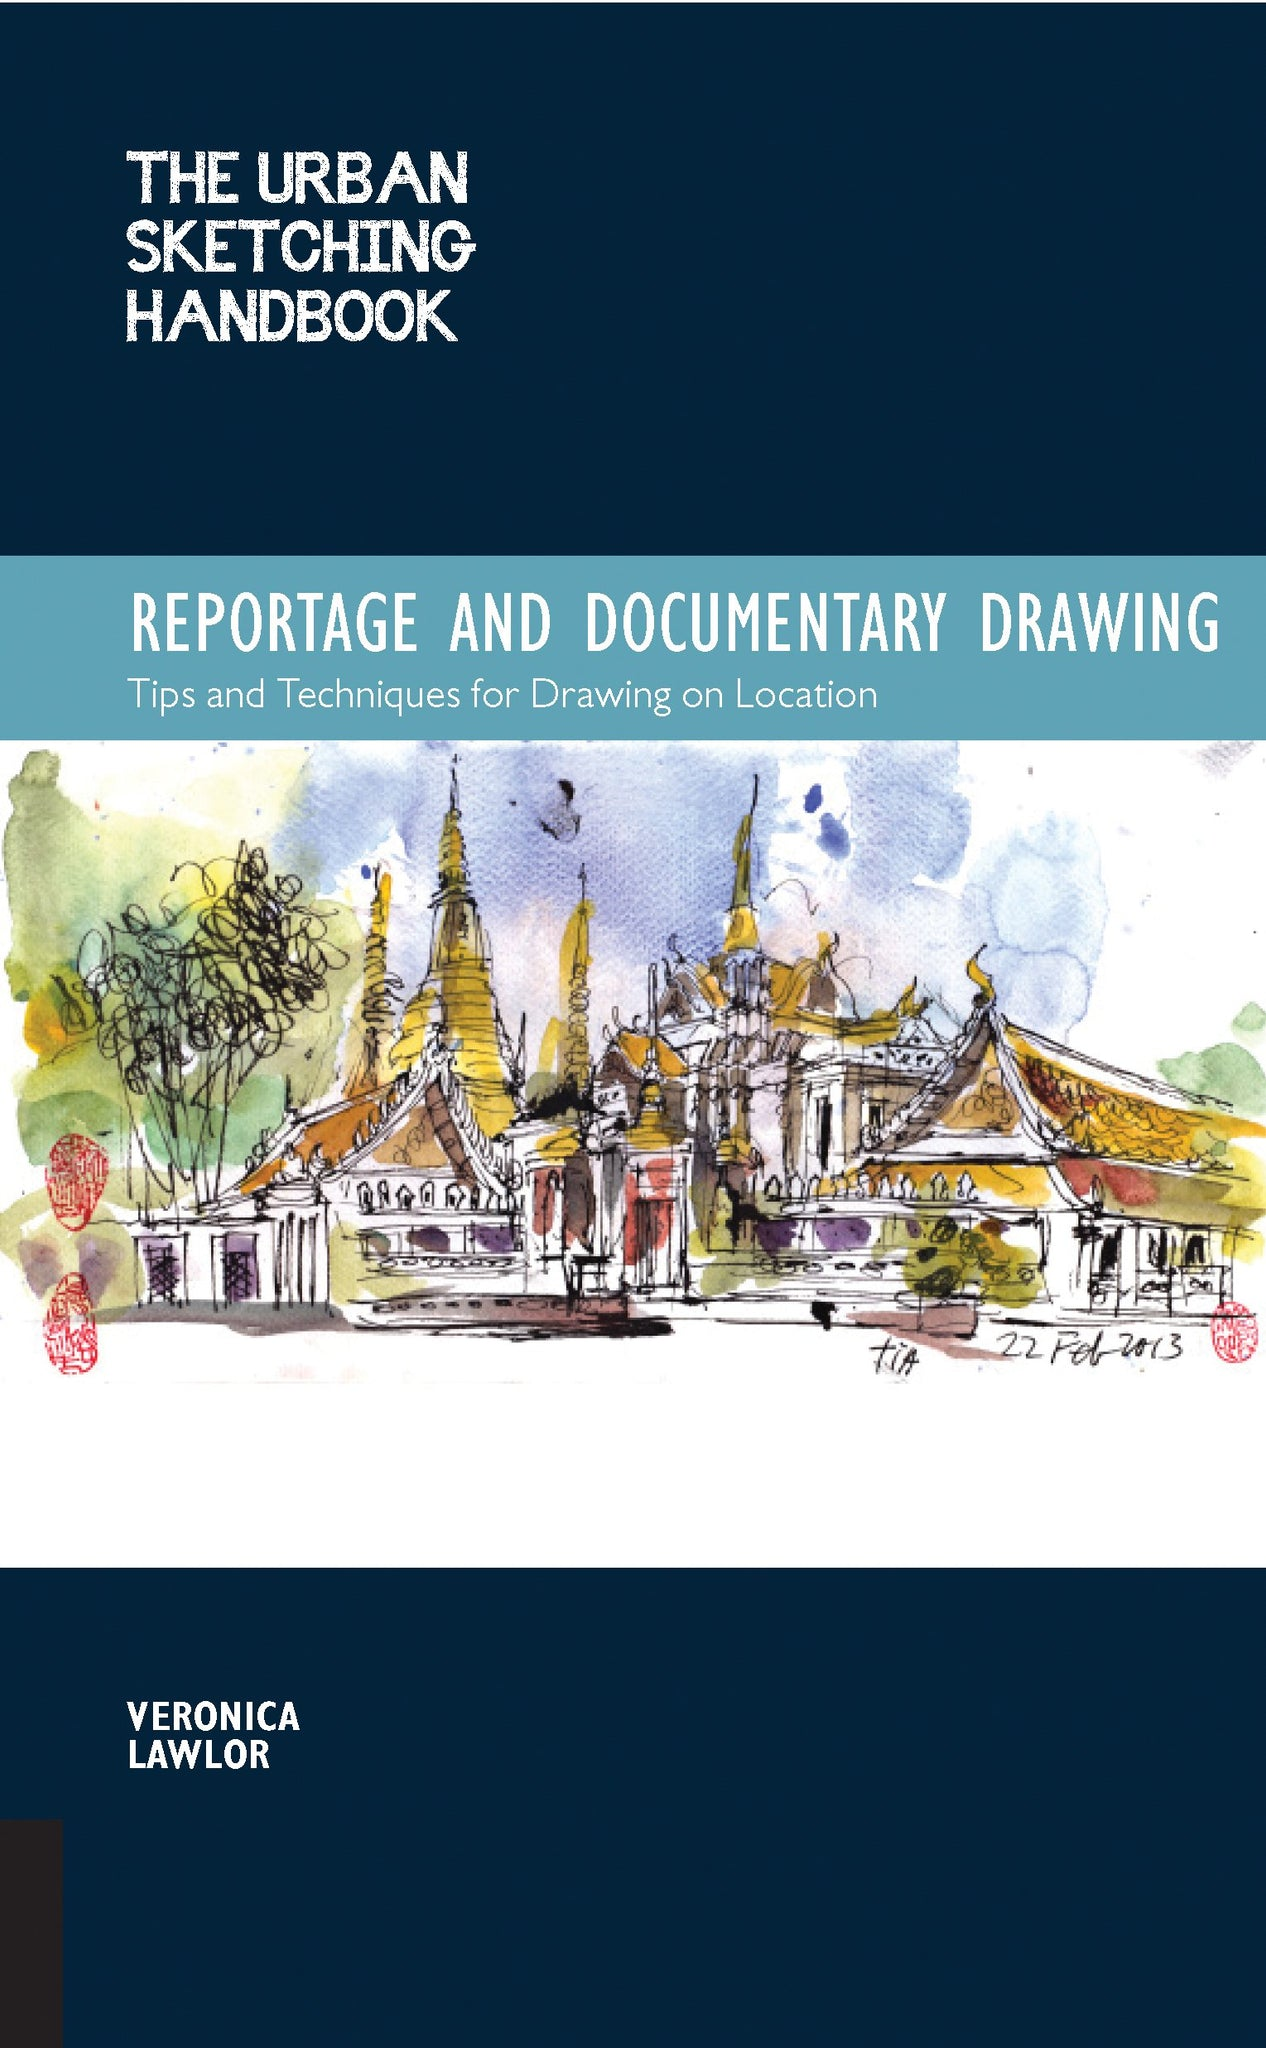 Urban Sketching Handbook: Reportage and Documentary Drawing